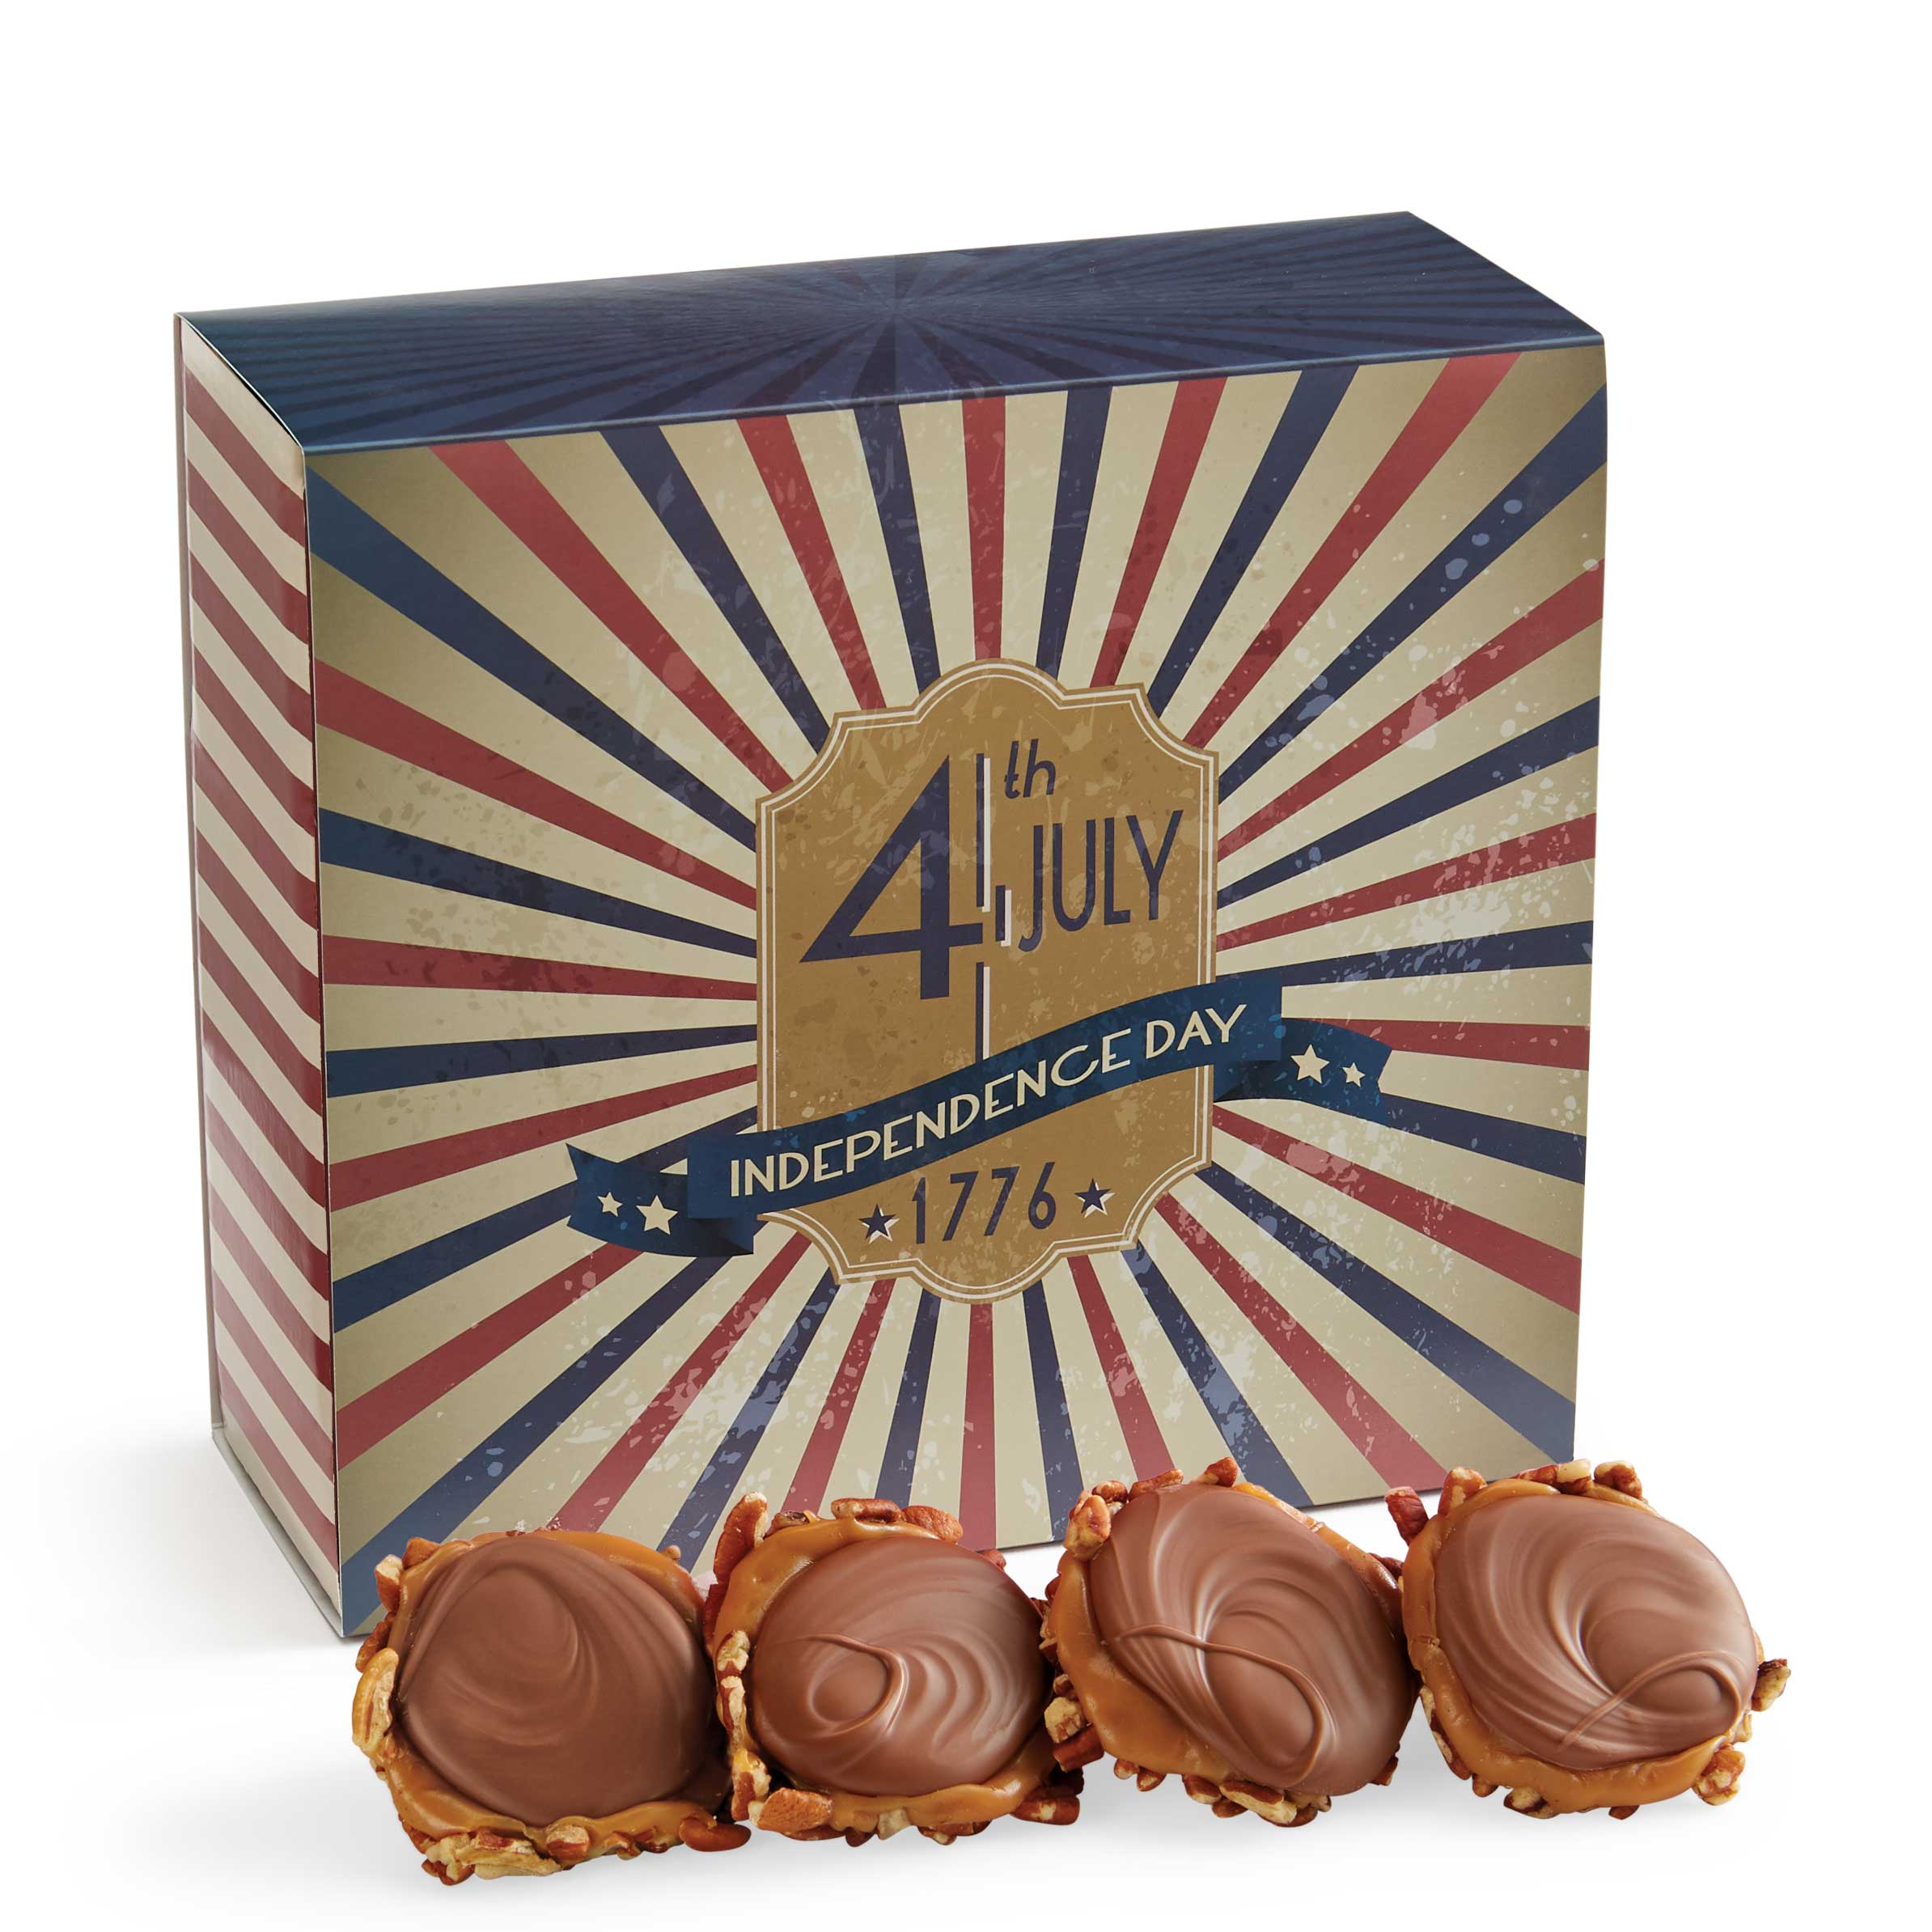 24 Piece Milk Chocolate Turtle Gophers in the 4th of July Gift Box